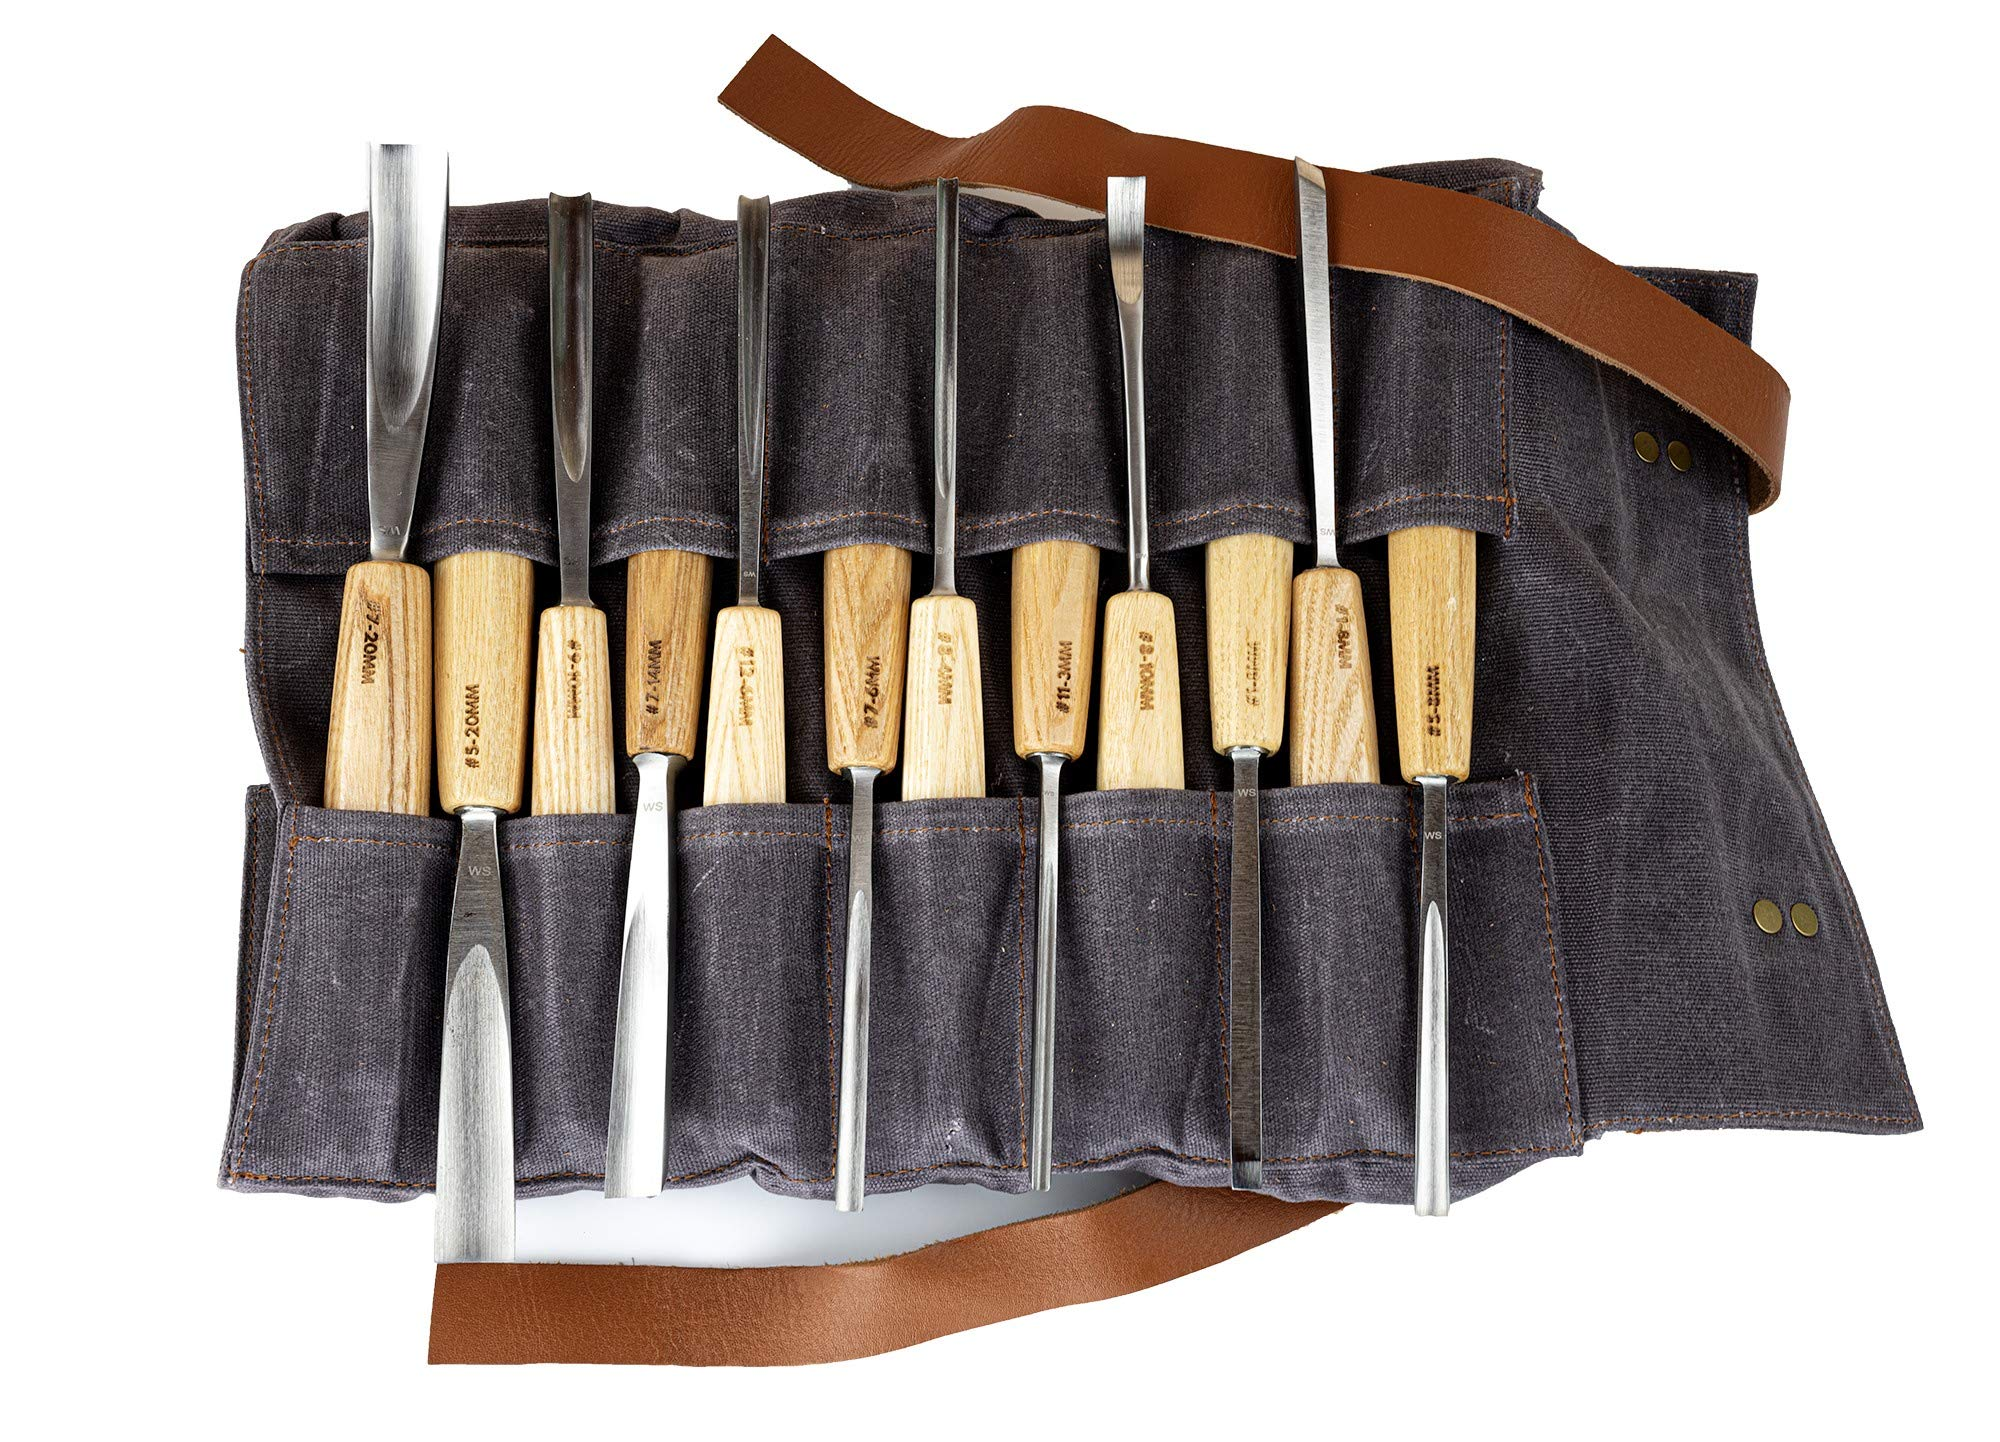 WINCKELSTEEL Wood Carving Tools Set of 12 Wood Chisels - Glides Through Wood Like Butter - Quality Carving Tools Chisel Set for All Skill Levels, Woodworking Tools for Hobbyists Or Professionals